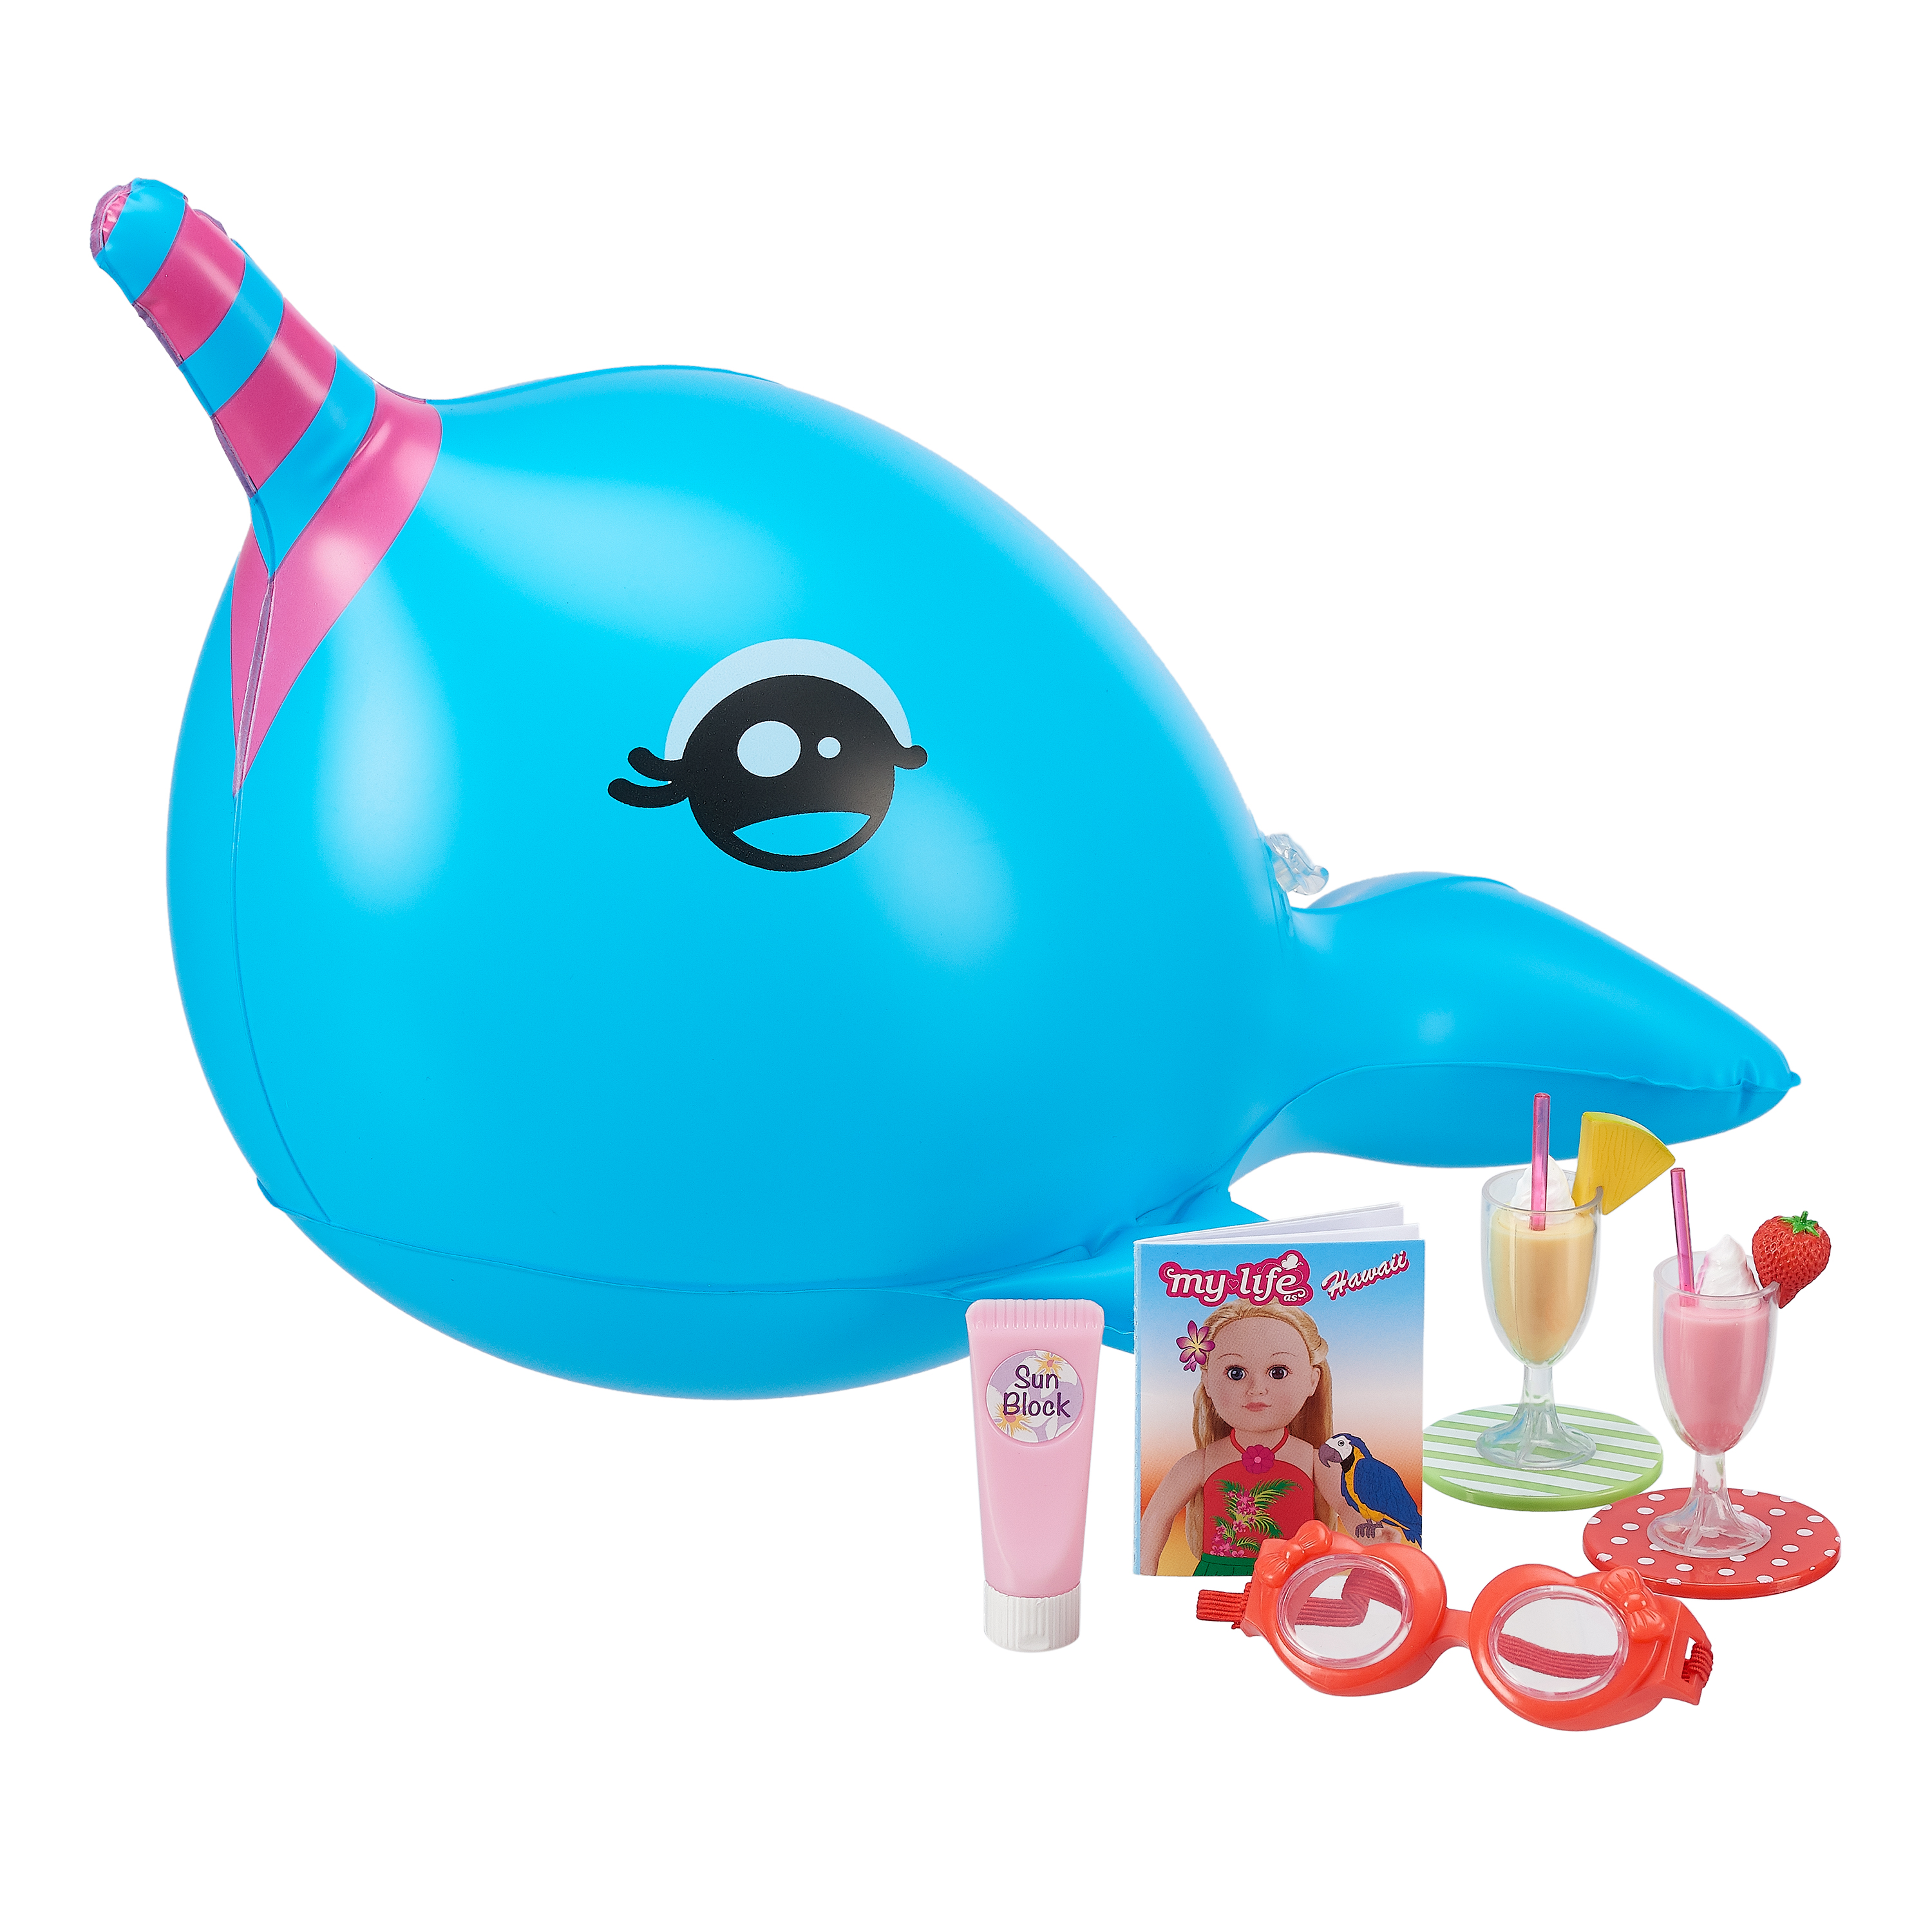 My Life As Narwhal Float Toy Accessories Play Set for 18-inch Dolls, 10 Pieces